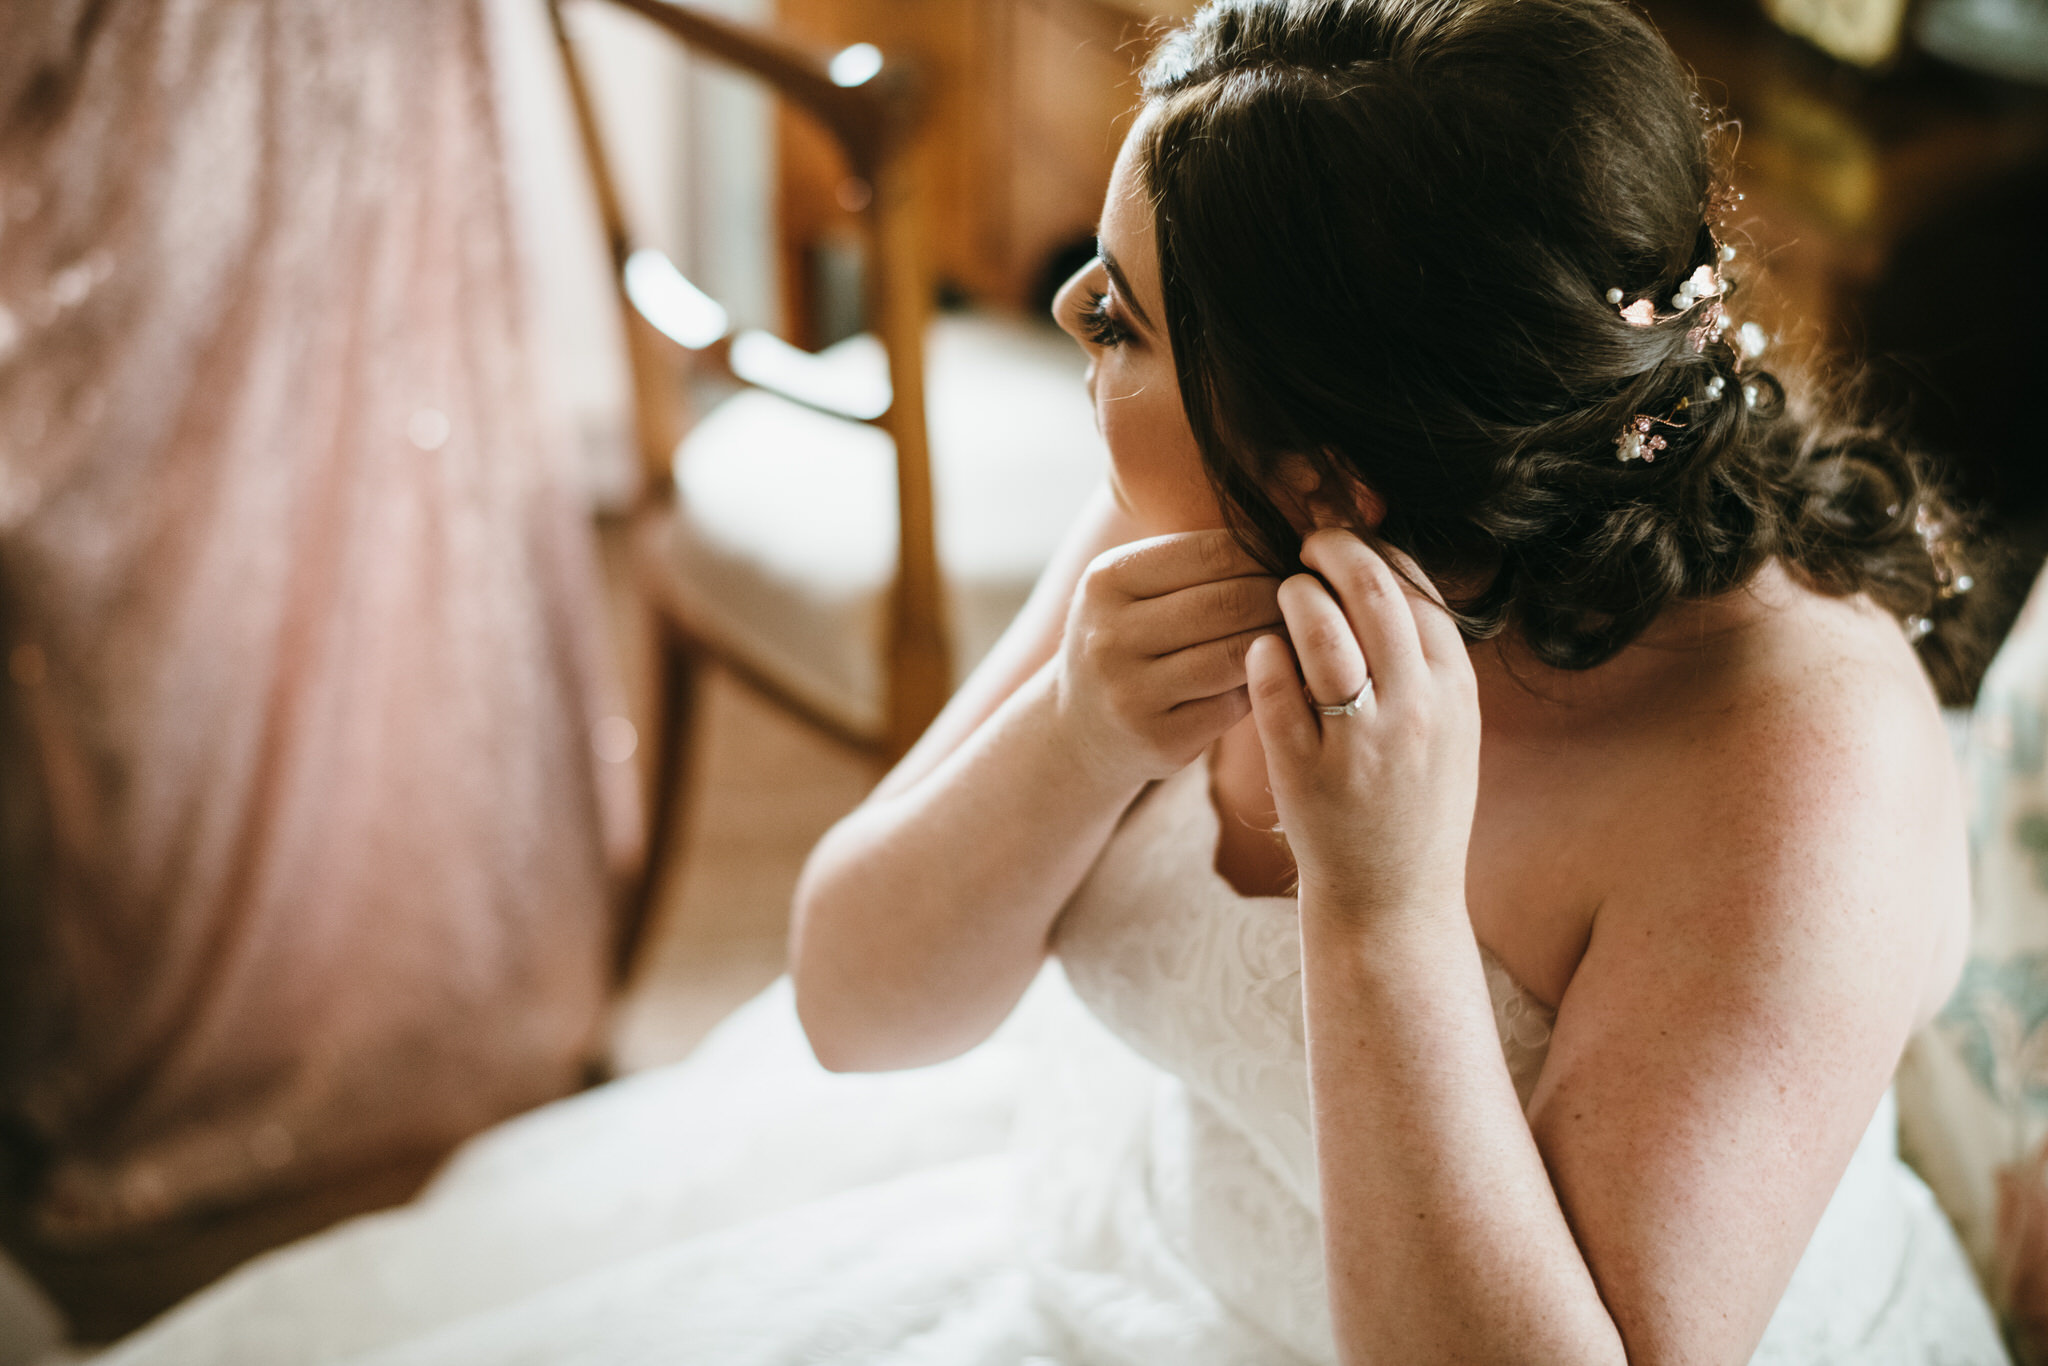 Bride puts earrings on while sat down